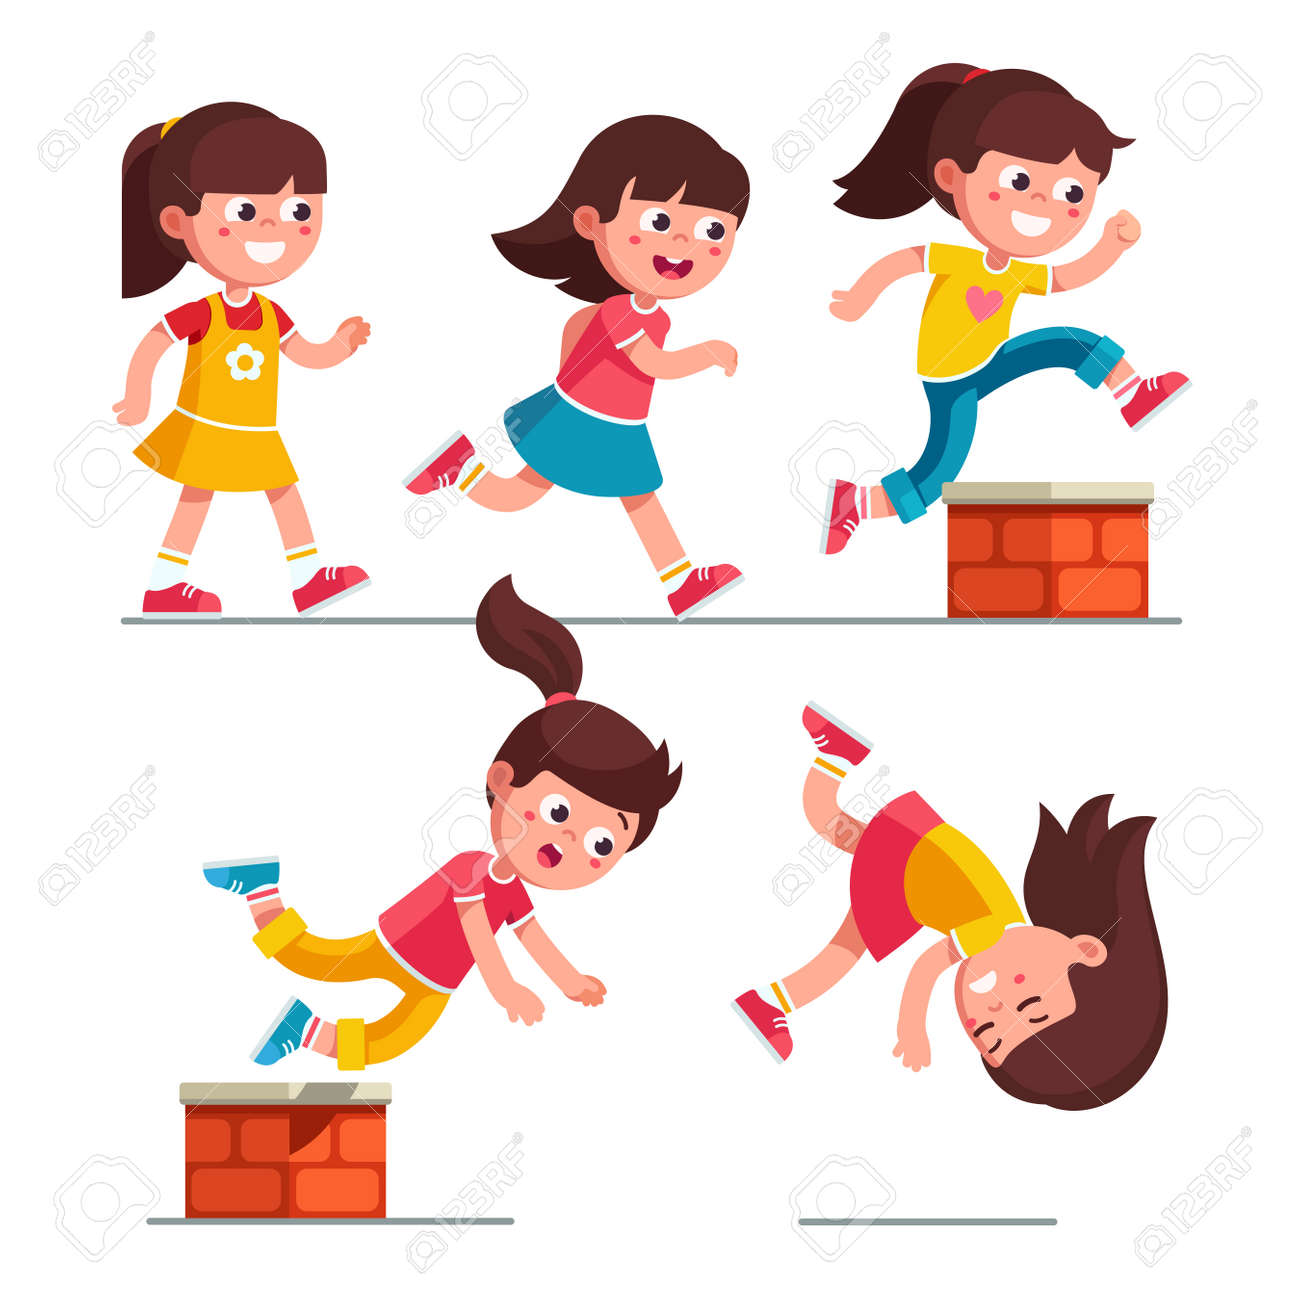 Smiling girl kid walking, running, jumping, stumbling on small brick obstacle and falling down. Child cartoon characters set. Childhood trip over hazard. Flat vector illustration isolated on white - 130198231